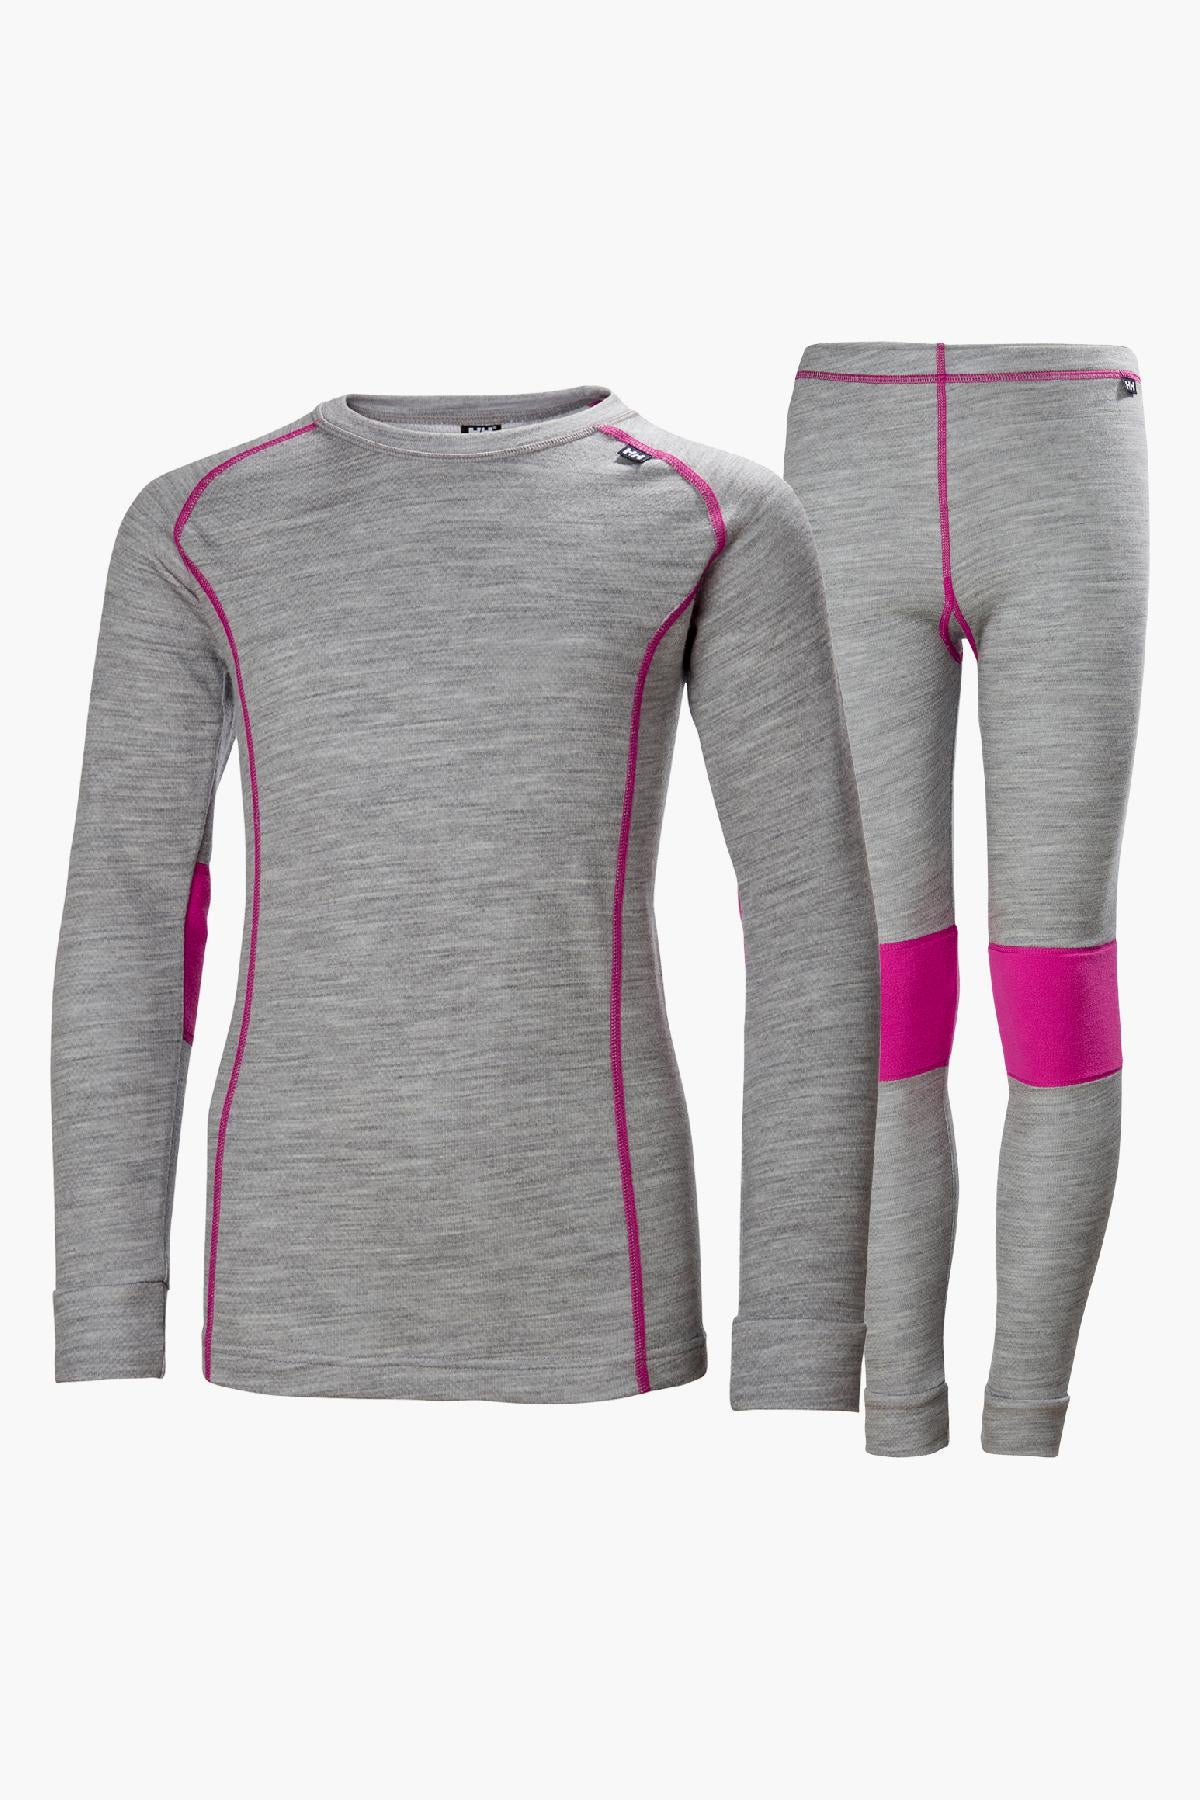 Helly Hansen Jr Lifa Merino Girls Baselayer Set - Grey Melange